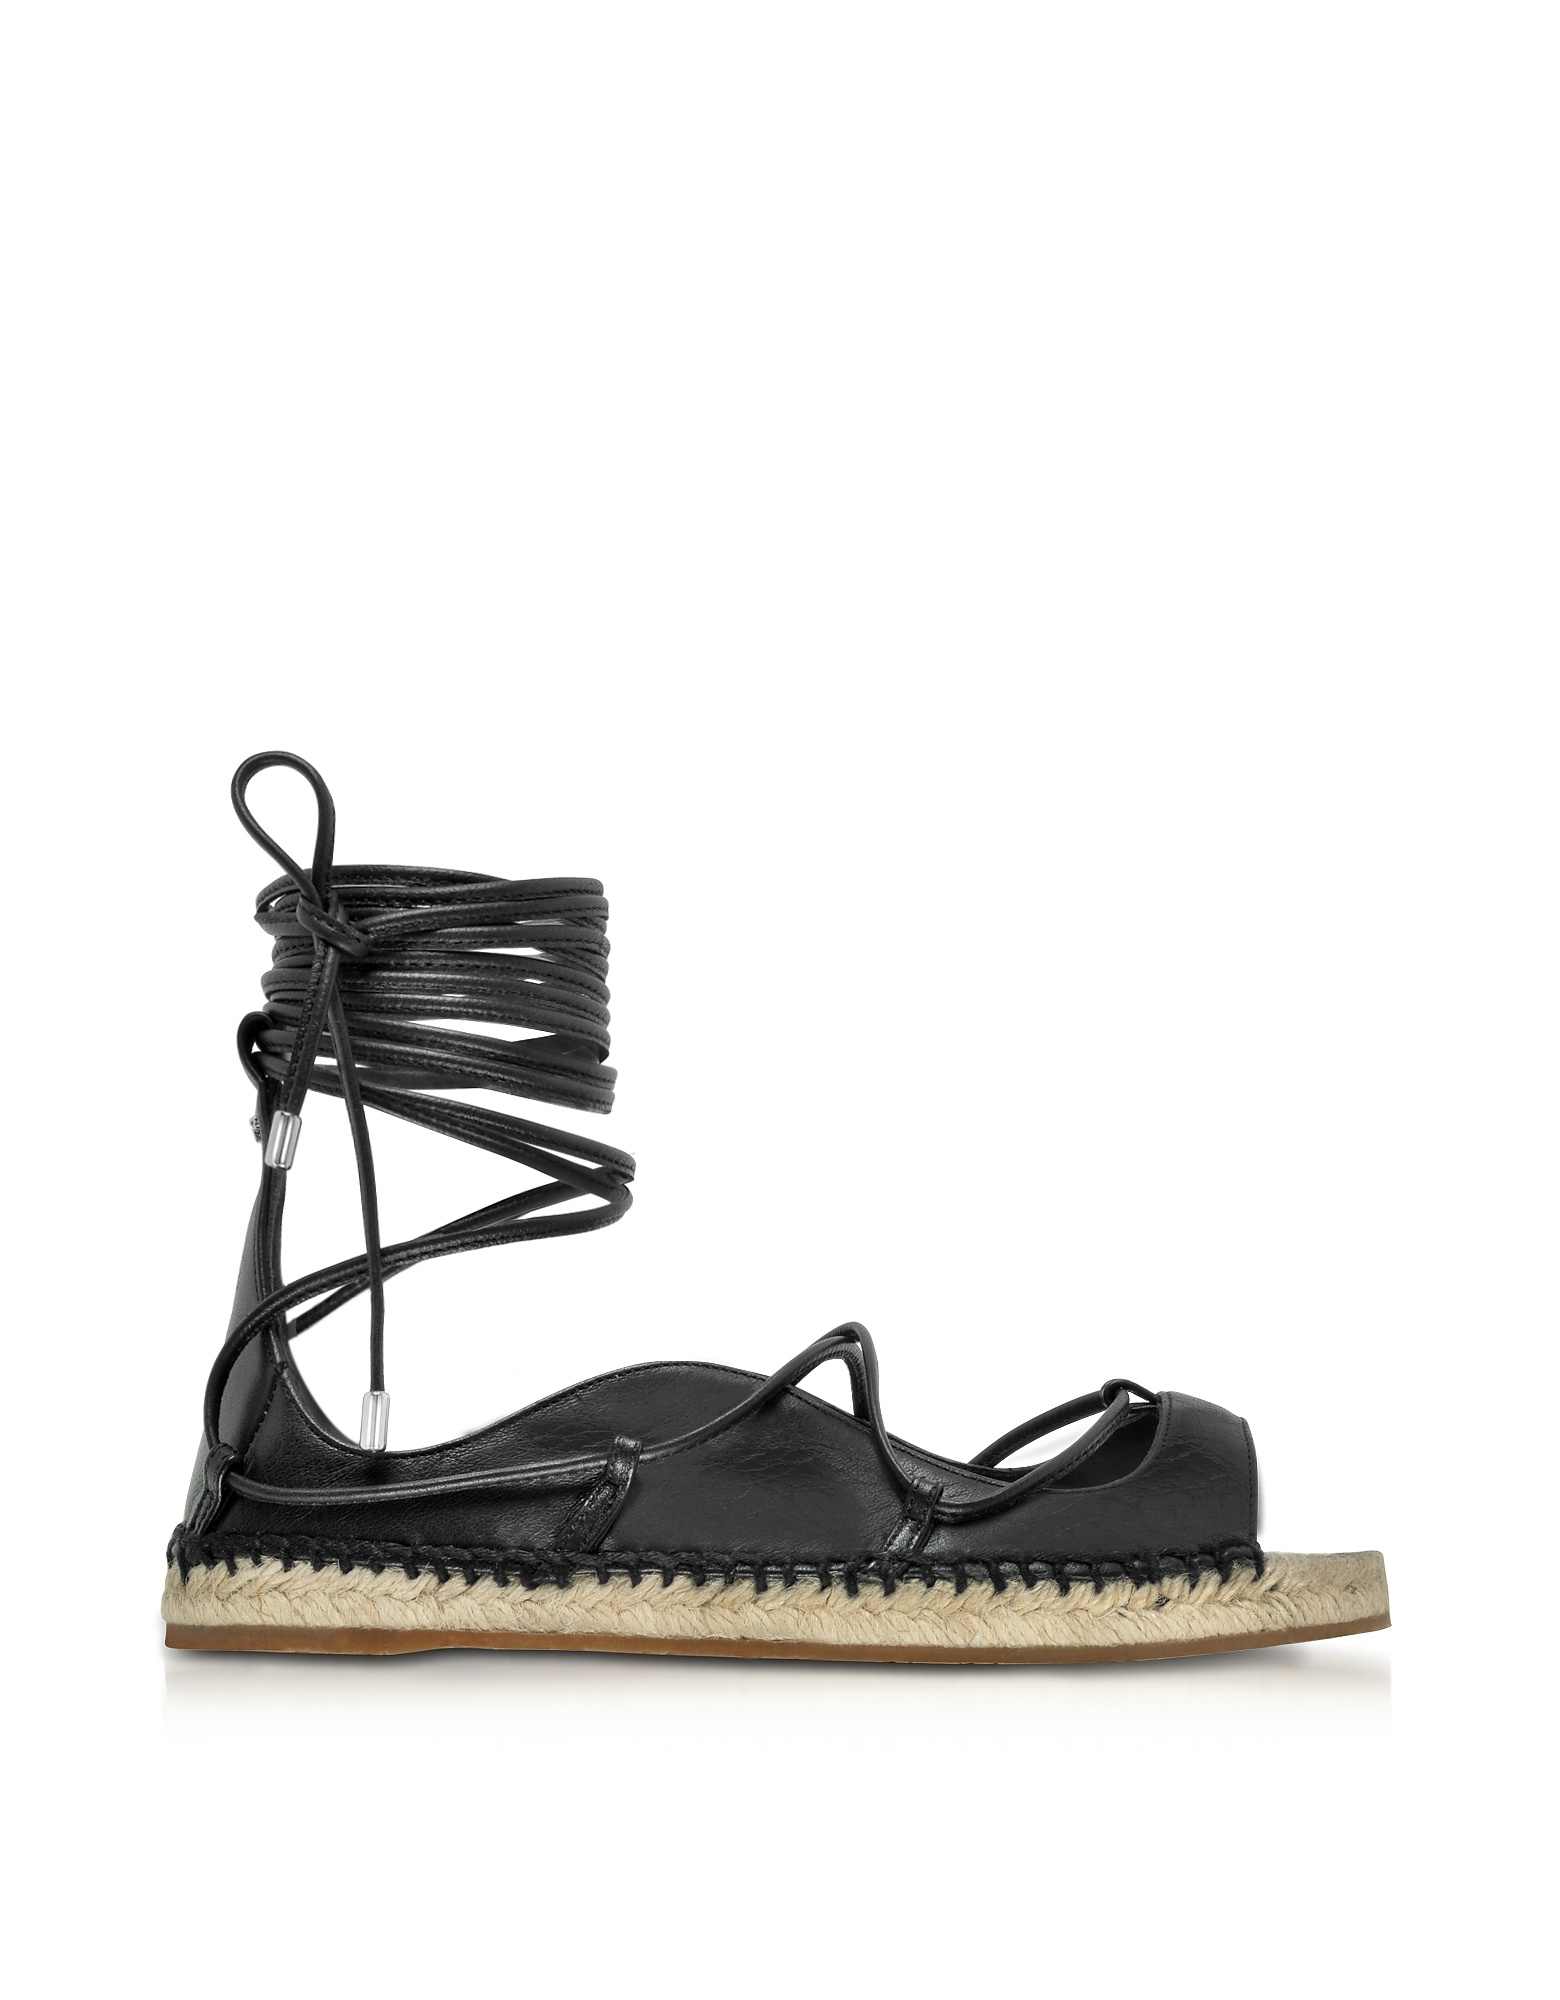 DSquared2 Shoes, Riri Black Nappa Leather Lace-up Flat Espadrilles